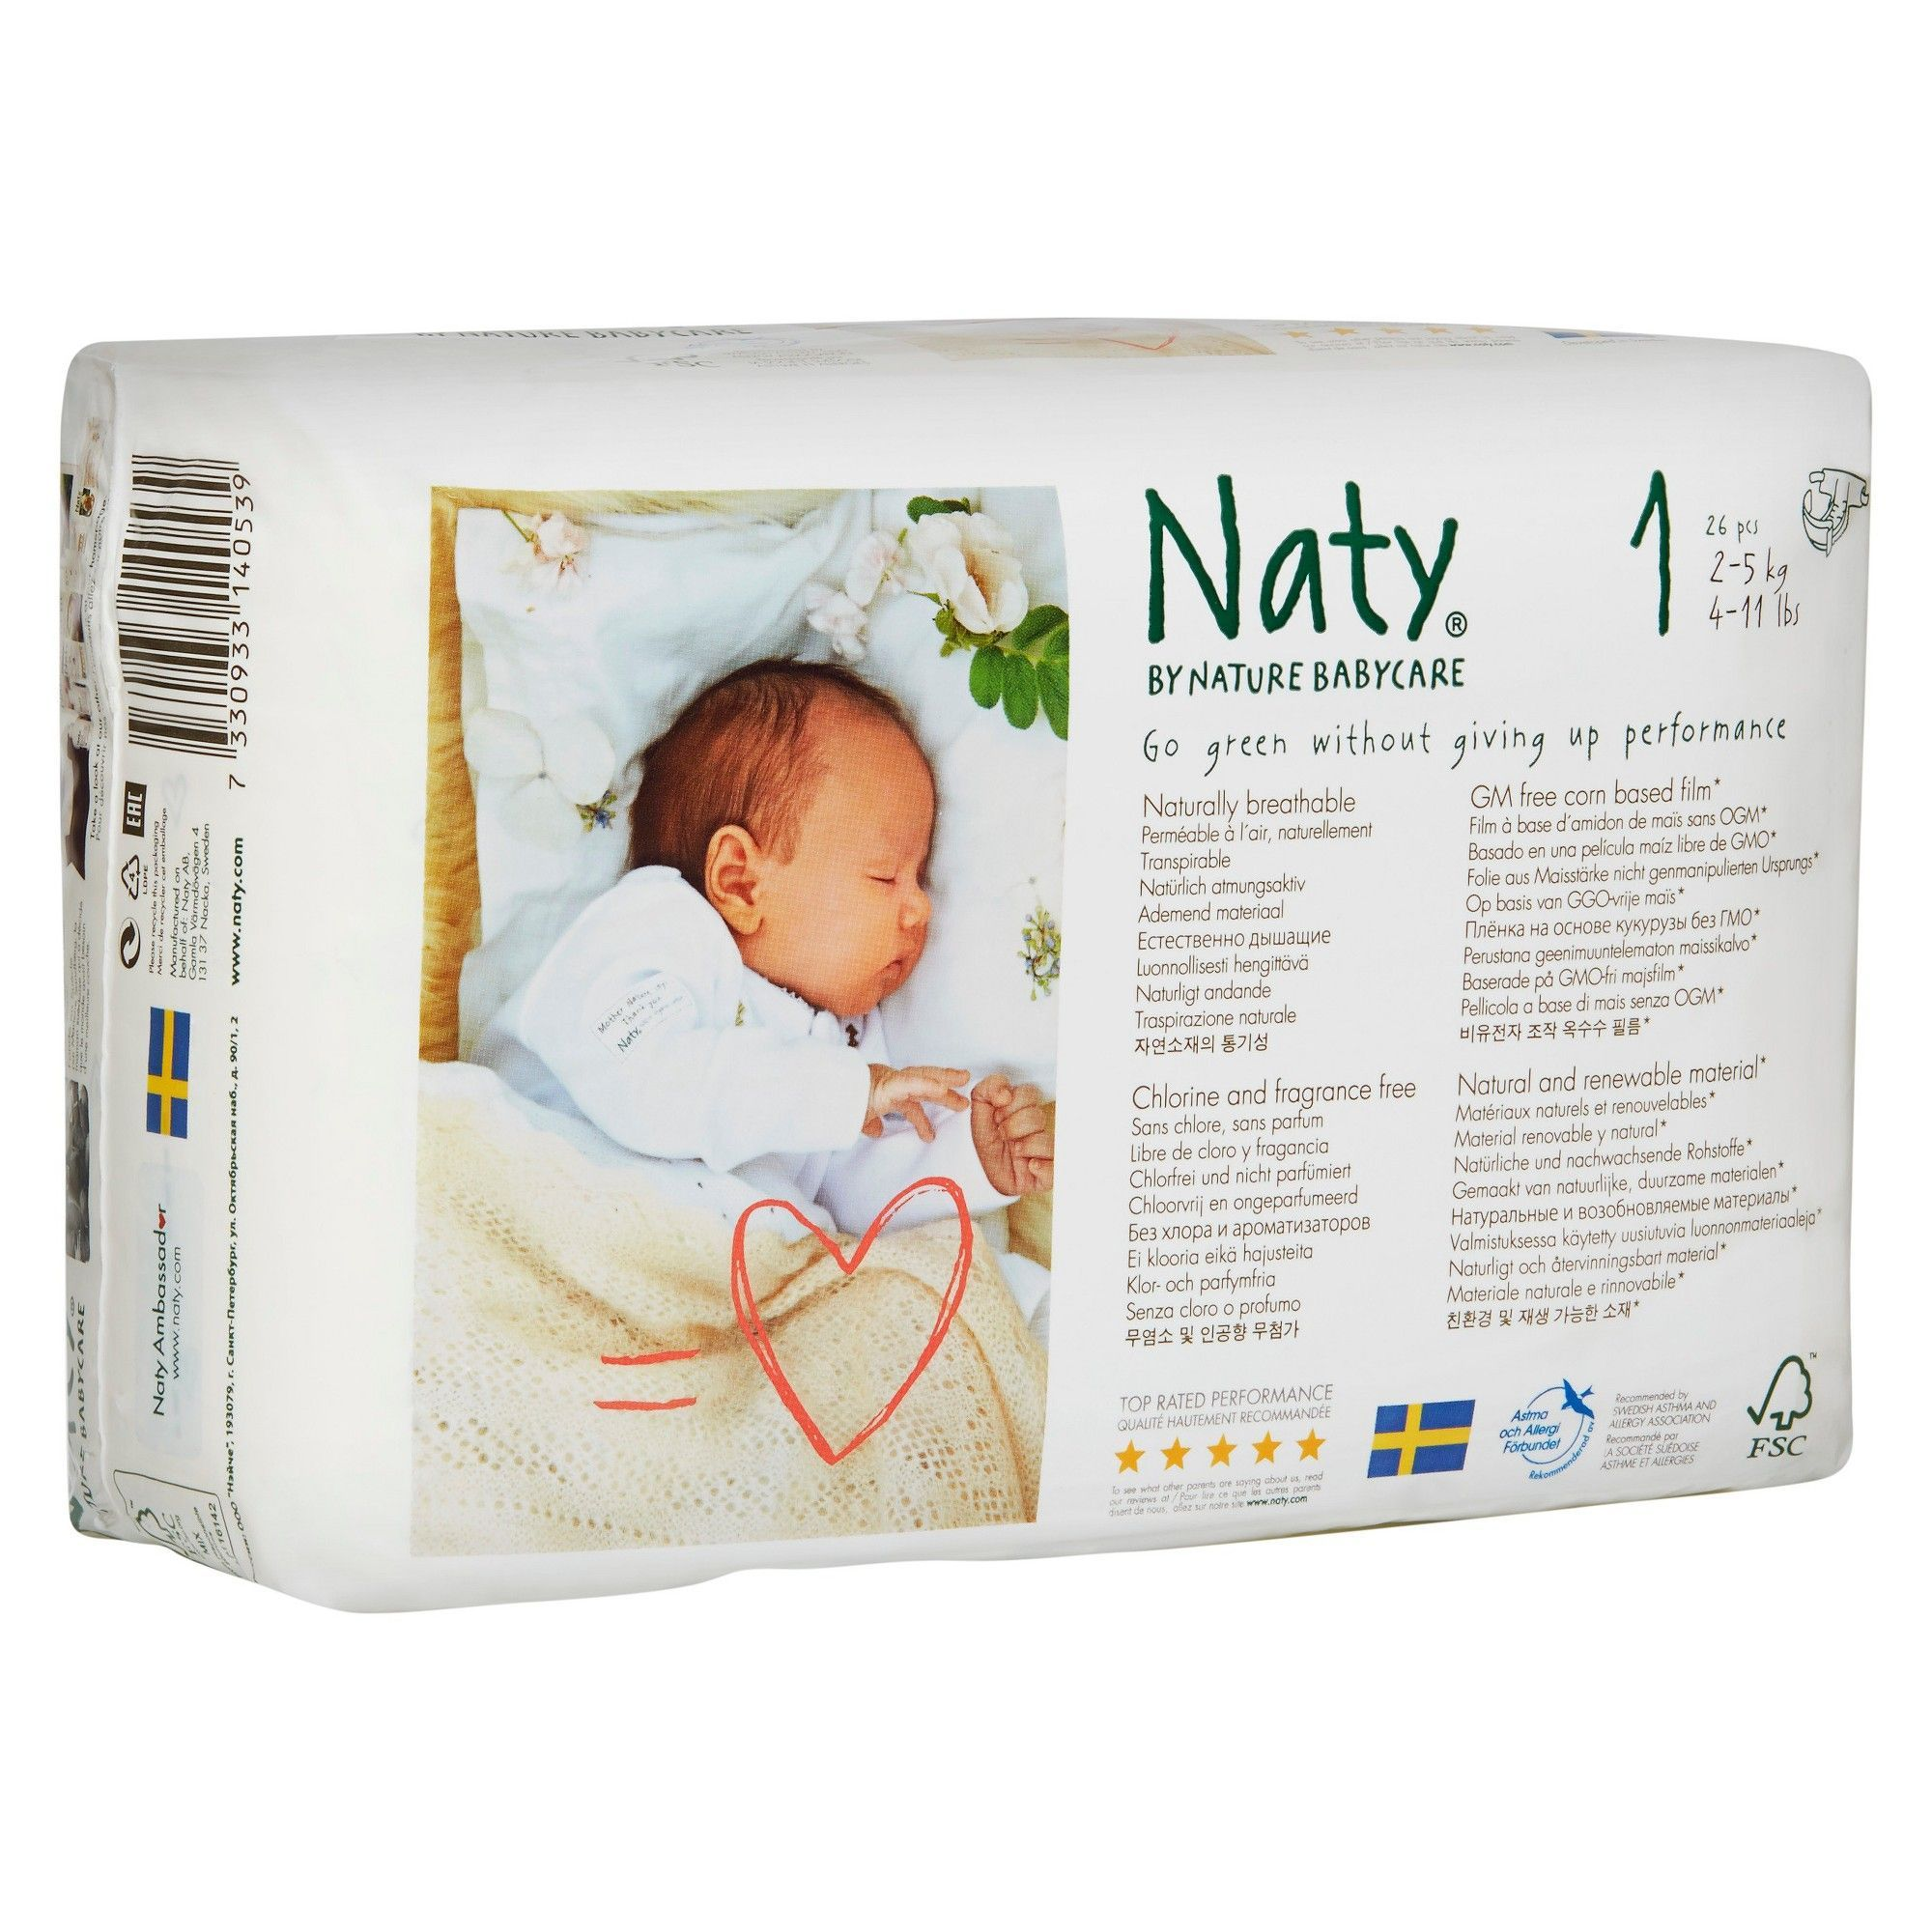 Naty by Nature Babycare Eco-Friendly Organic Diapers size 1 26ct